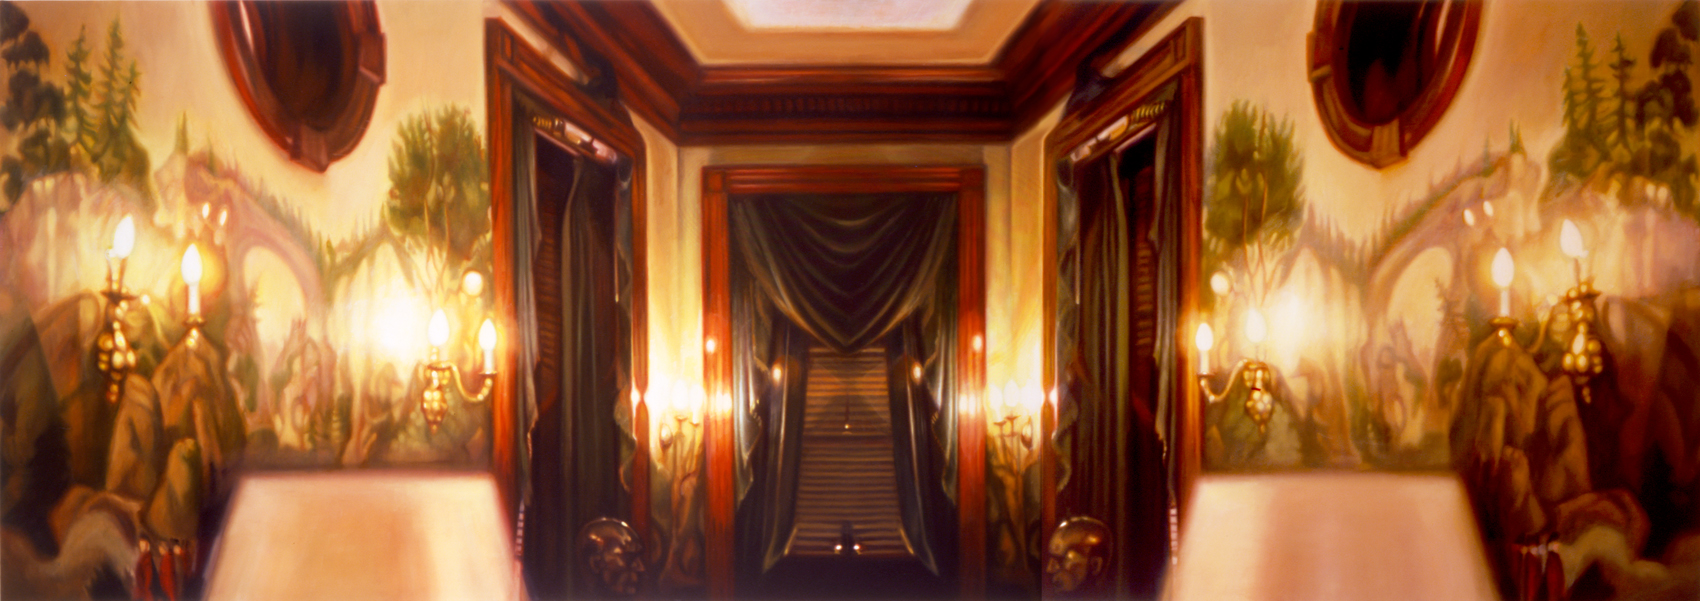 "Westwing Interior I    Oil on panel  28"" x 79 1/2""  2005"